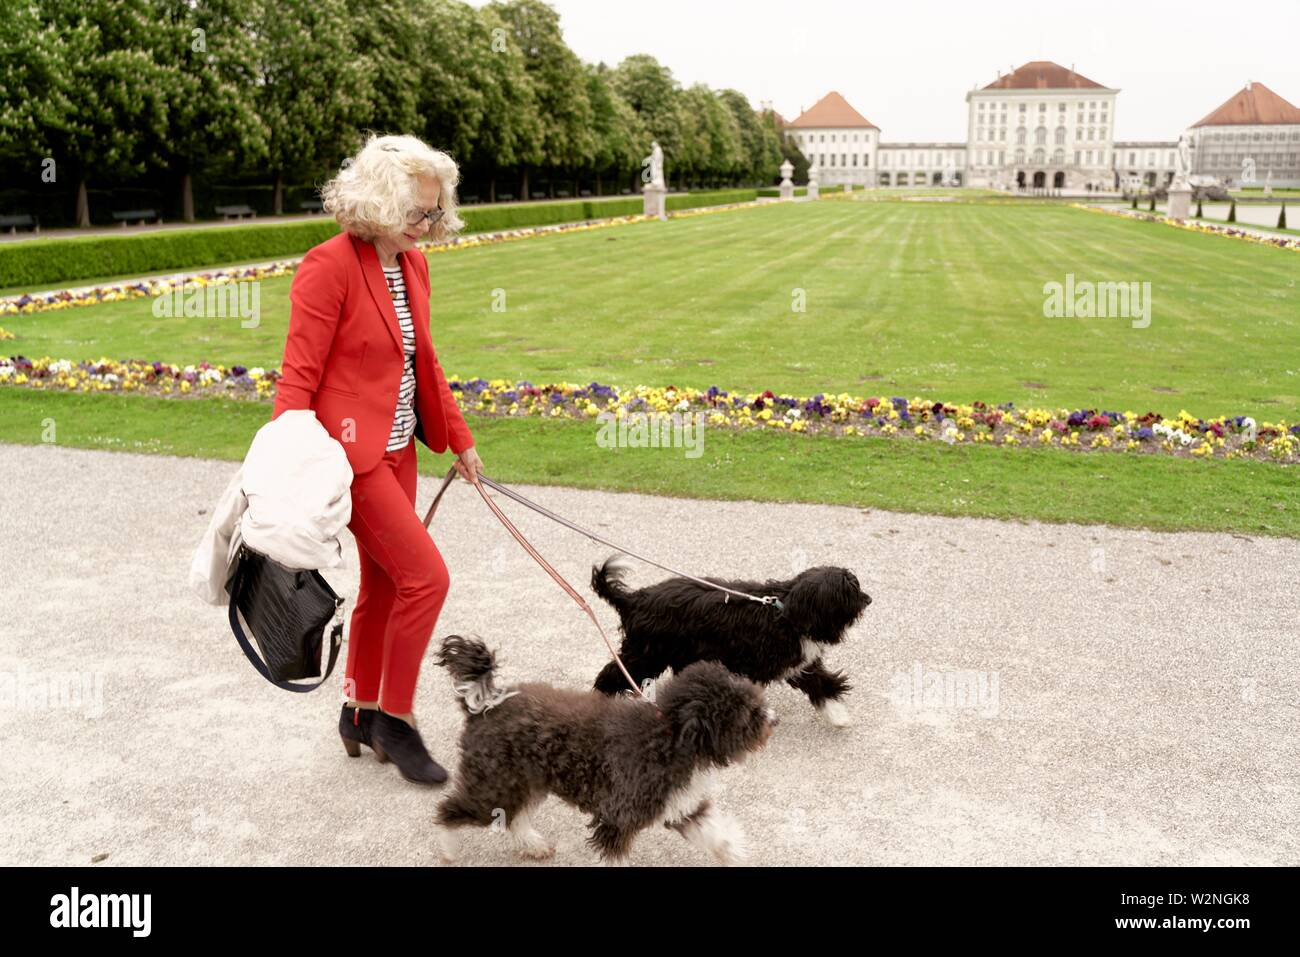 senior woman walking with two dogs in park at touristic sight Nymphenburg palace, in Munich, Germany. - Stock Image